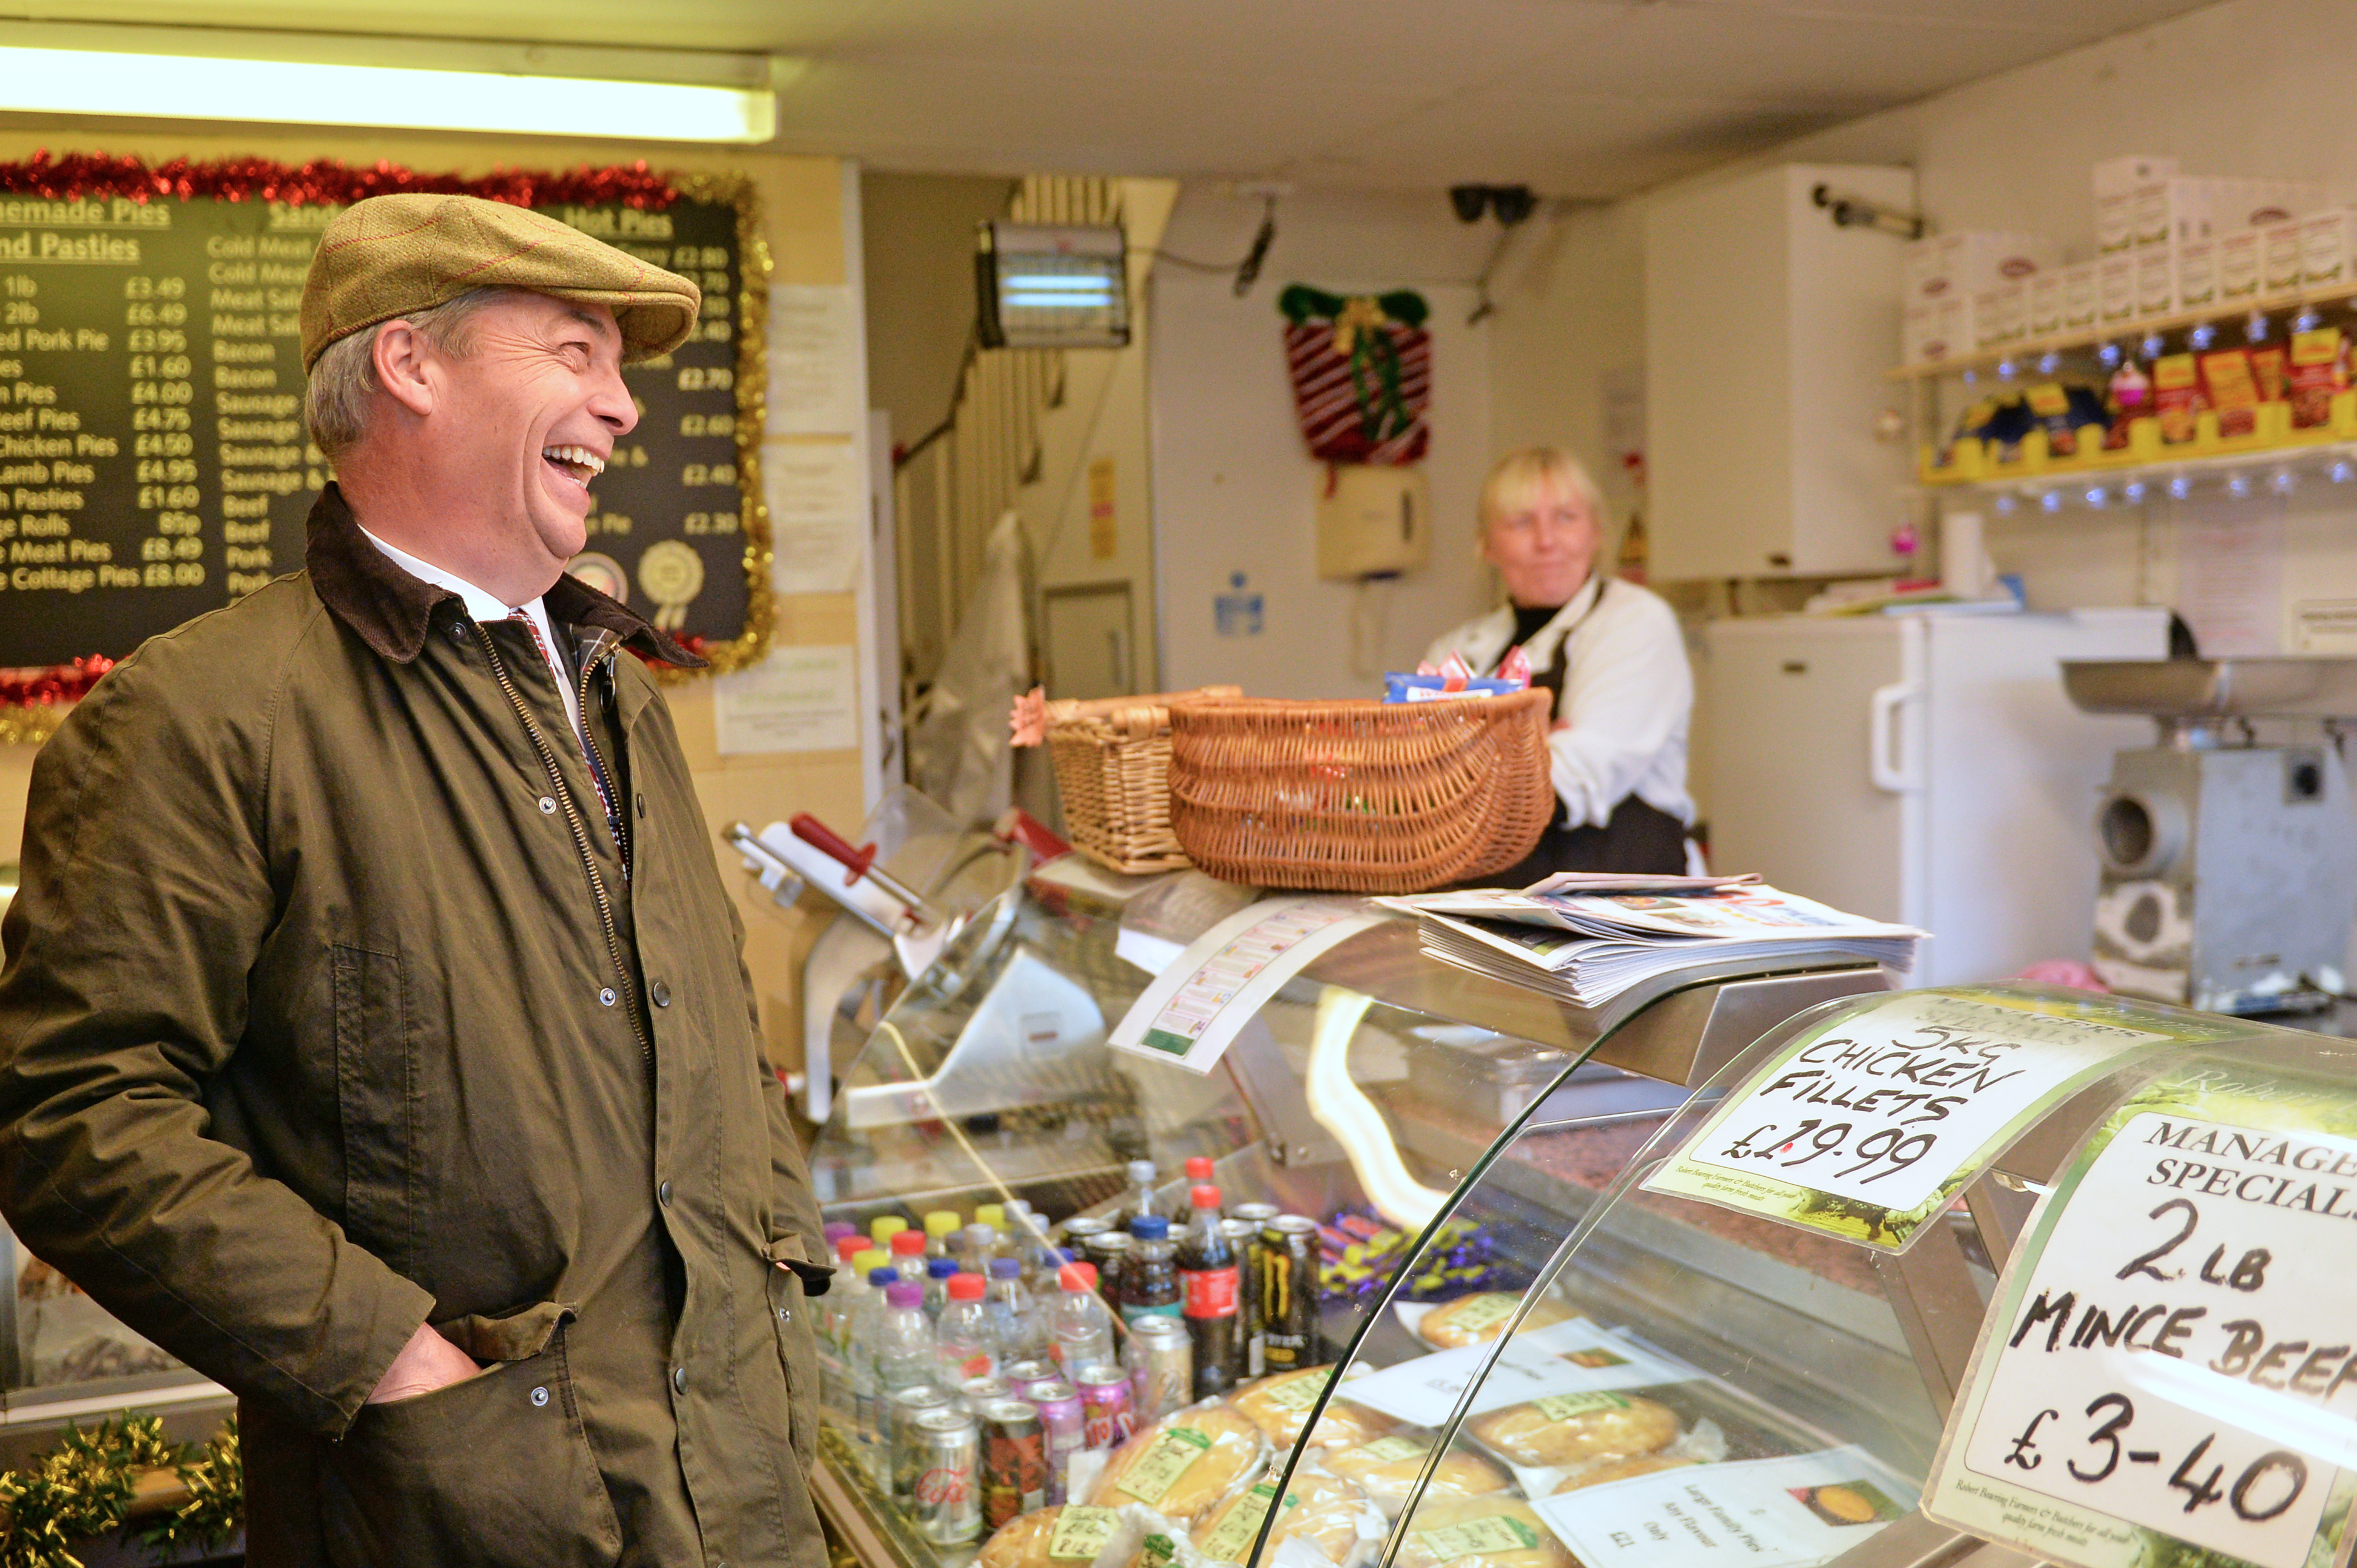 Brexit Party leader Nigel Farage inside a pie shop during a visit to Bolsover, Chesterfield, whilst on the General Election campaign trail.